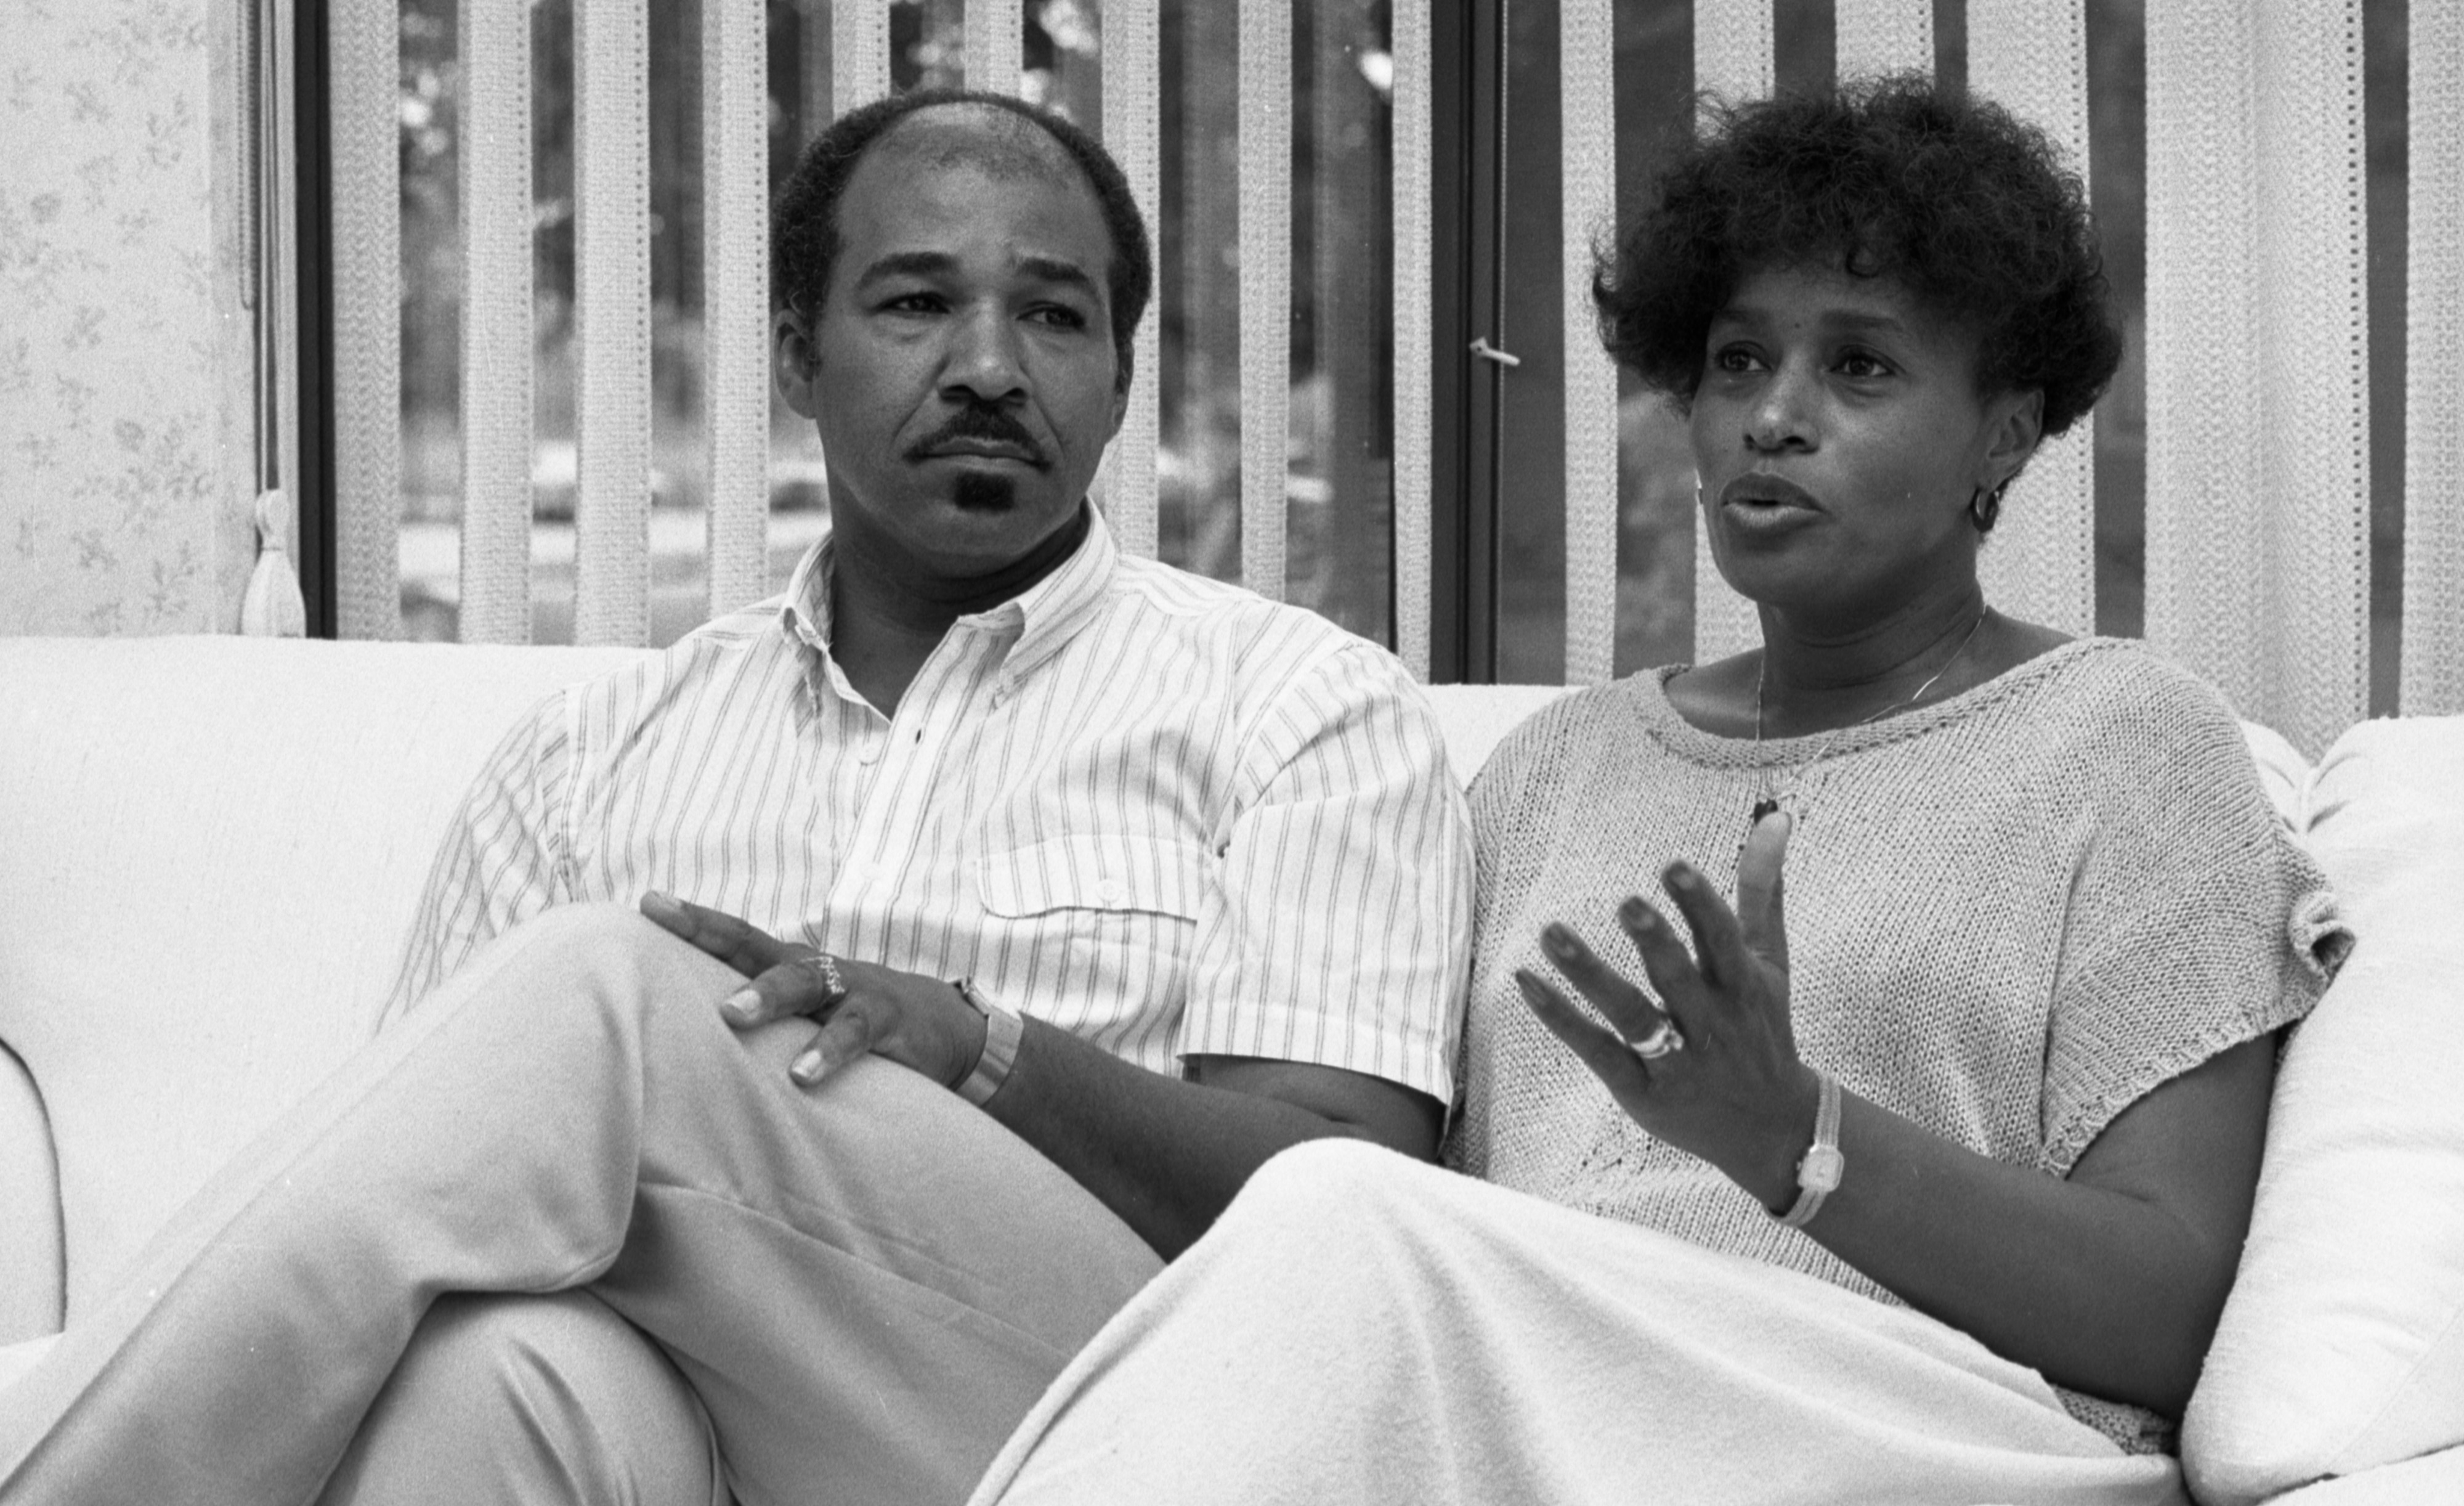 Grant & Charlina Stewart Discuss The Ann Arbor Public School System, September 1987 image